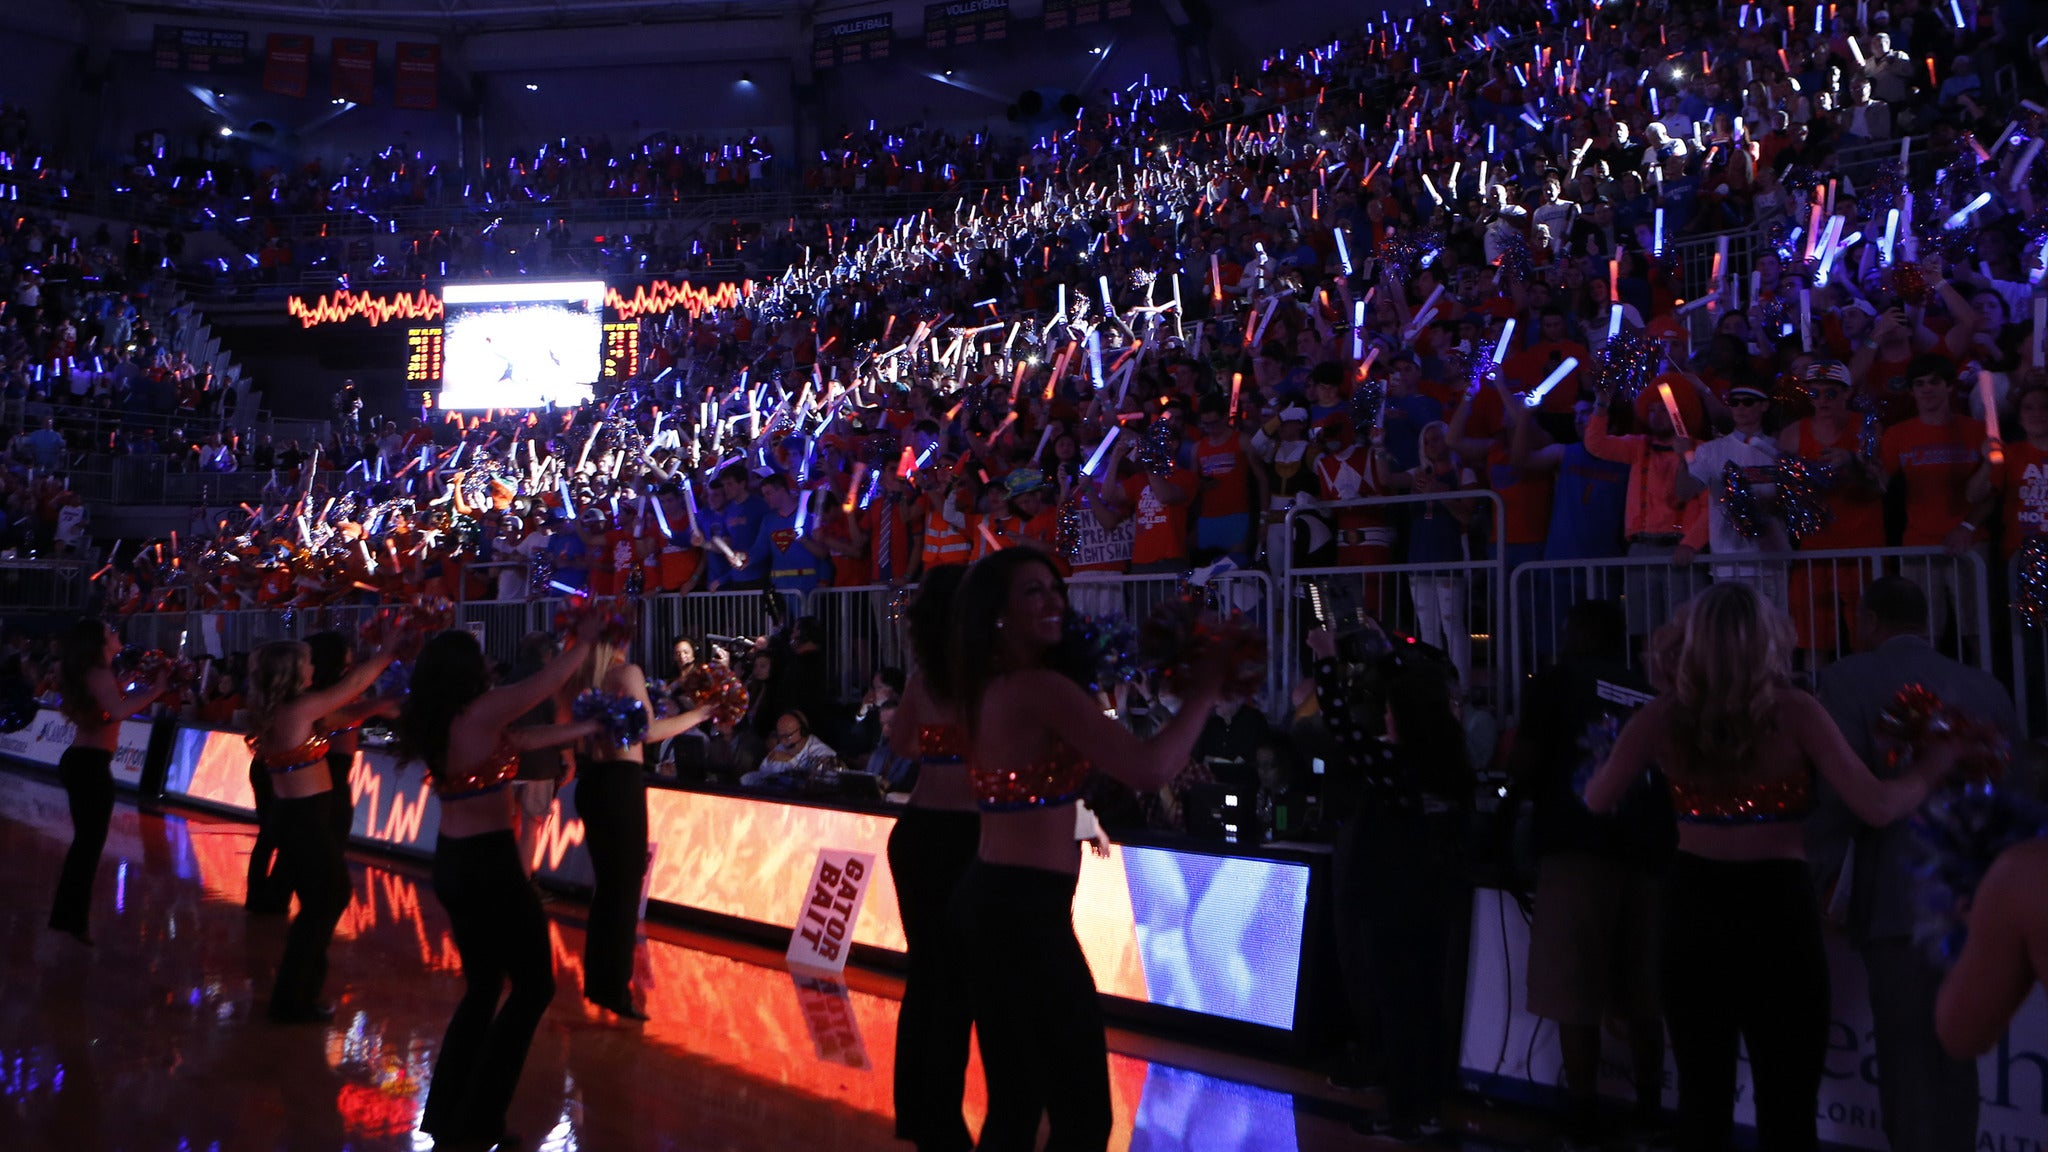 Exhibition Game: Florida Gators MBB Vs Eckerd College